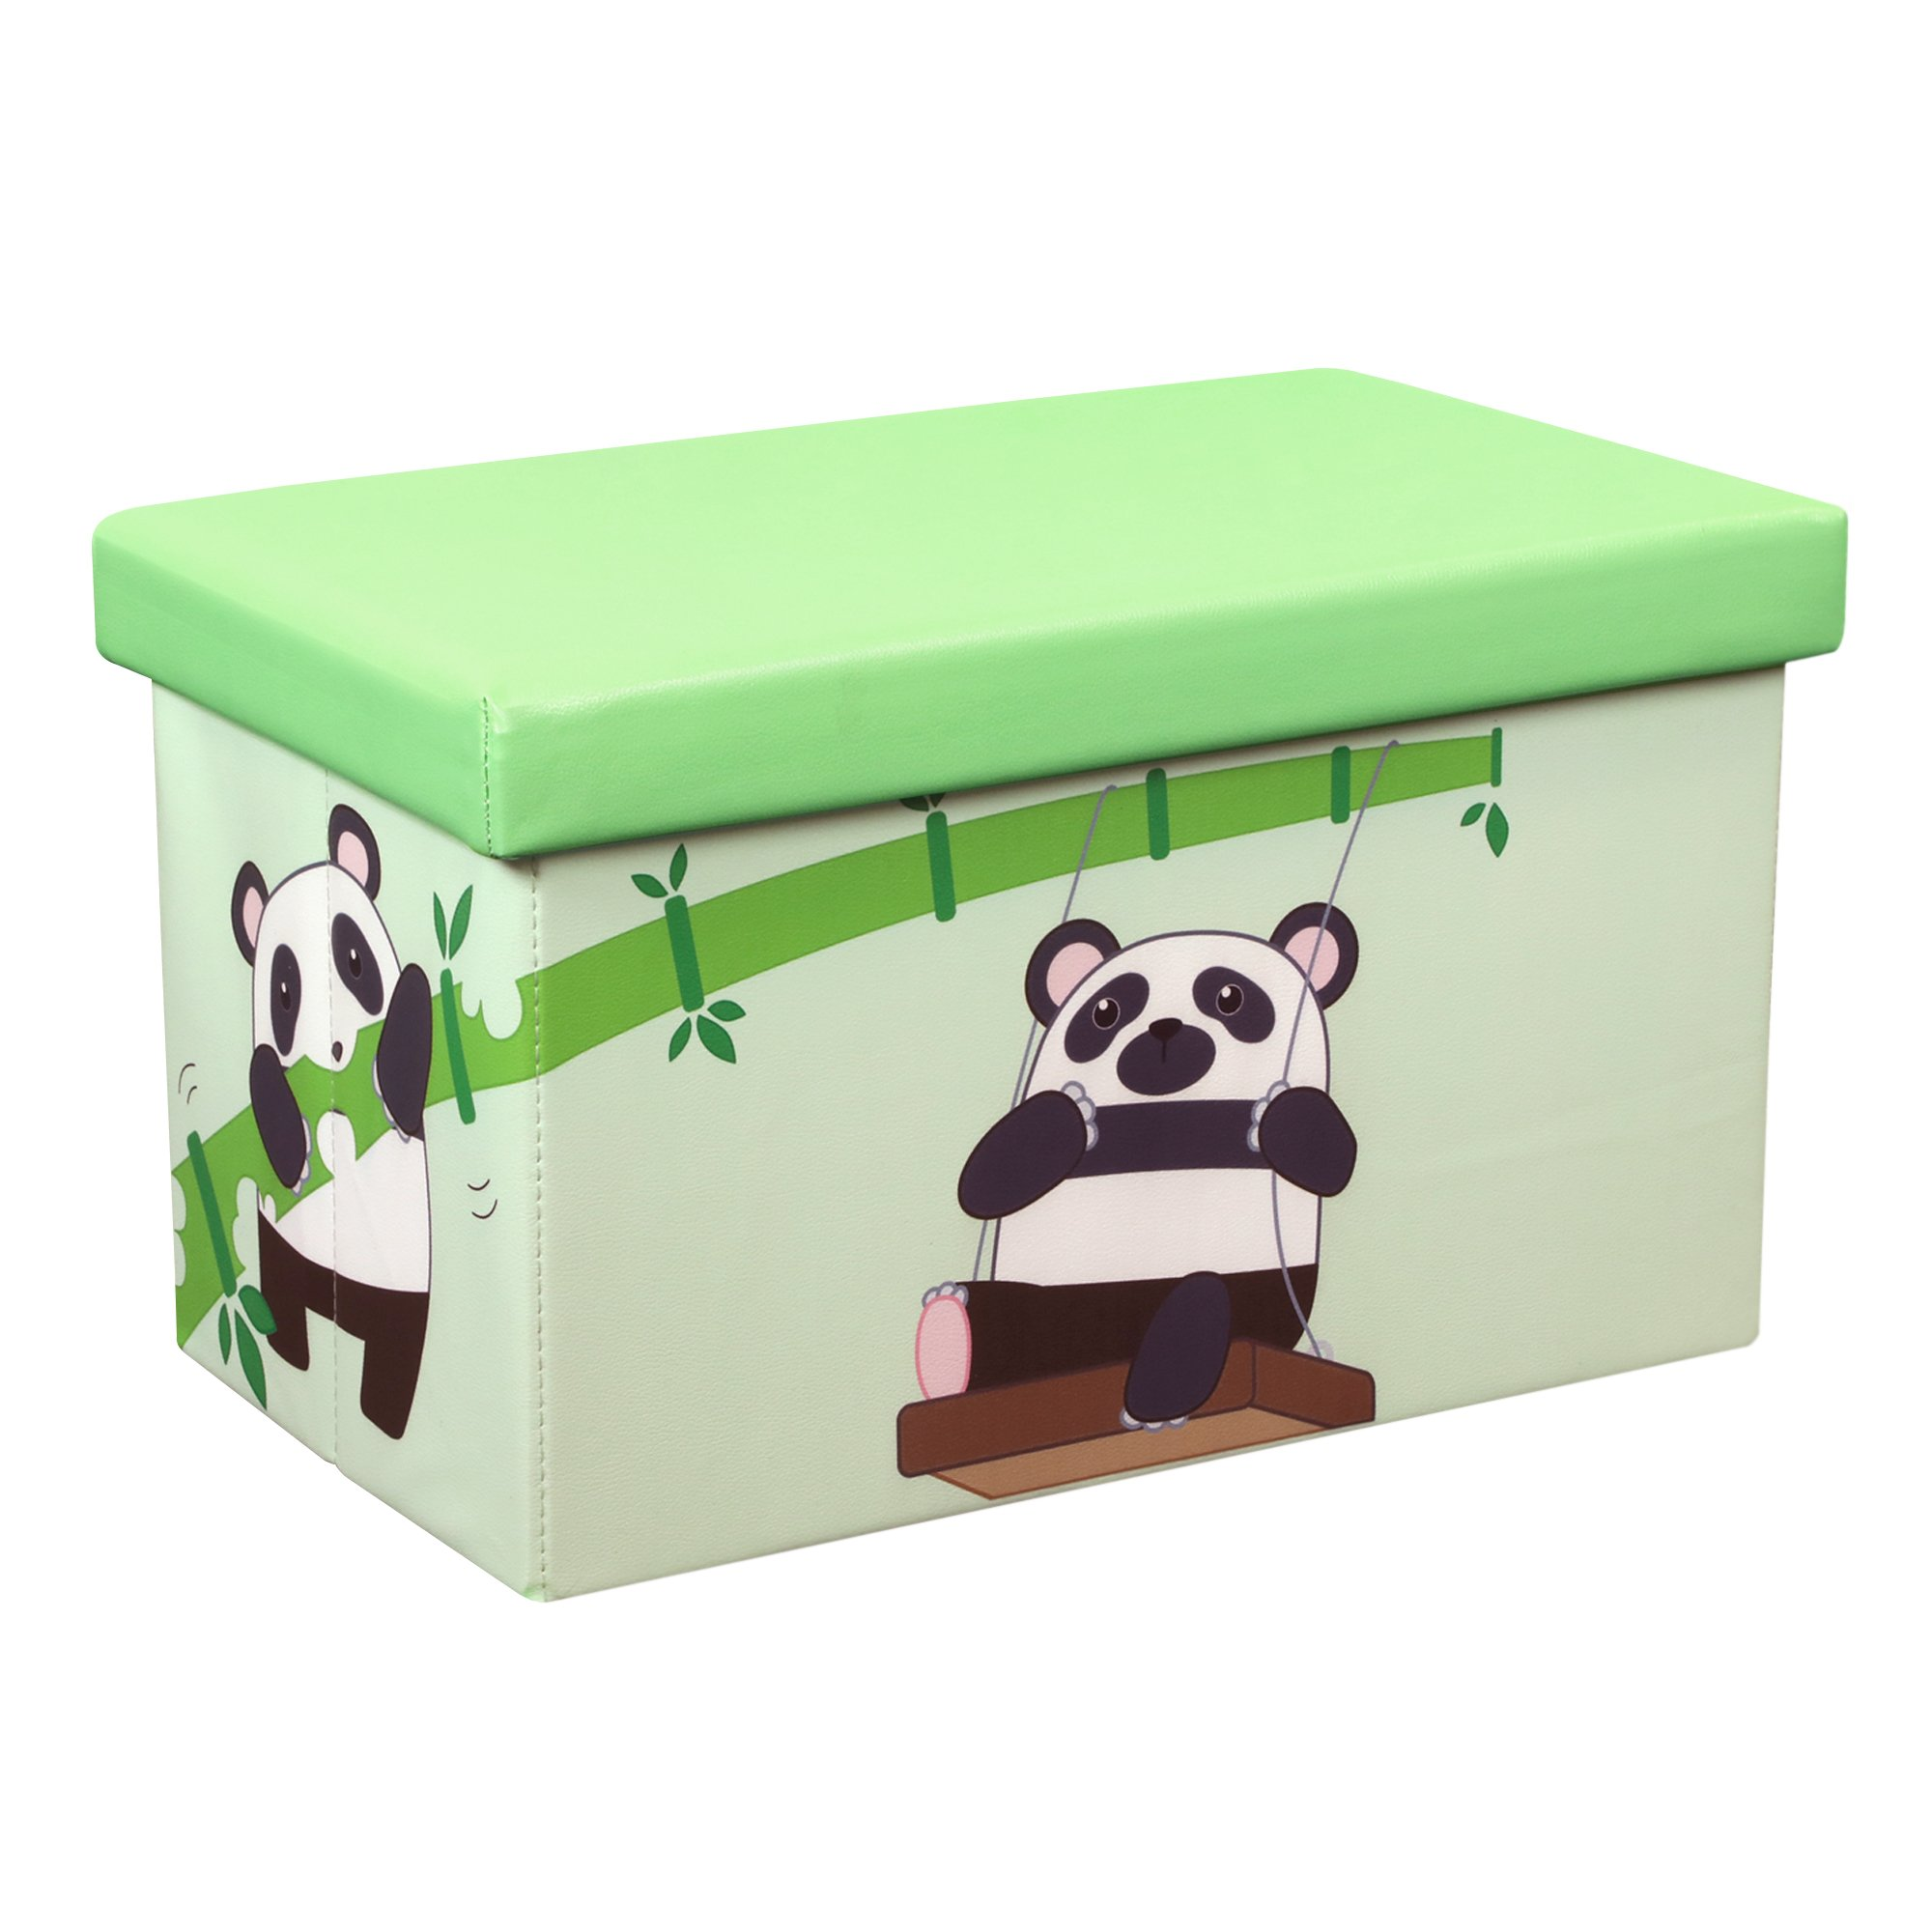 Otto & Ben 20'' Toy Box - Folding Storage Ottoman Chest with Foam Cushion Seat, Washable Faux Leather Foot Rest Stools for Kids, Panda and Bamboo